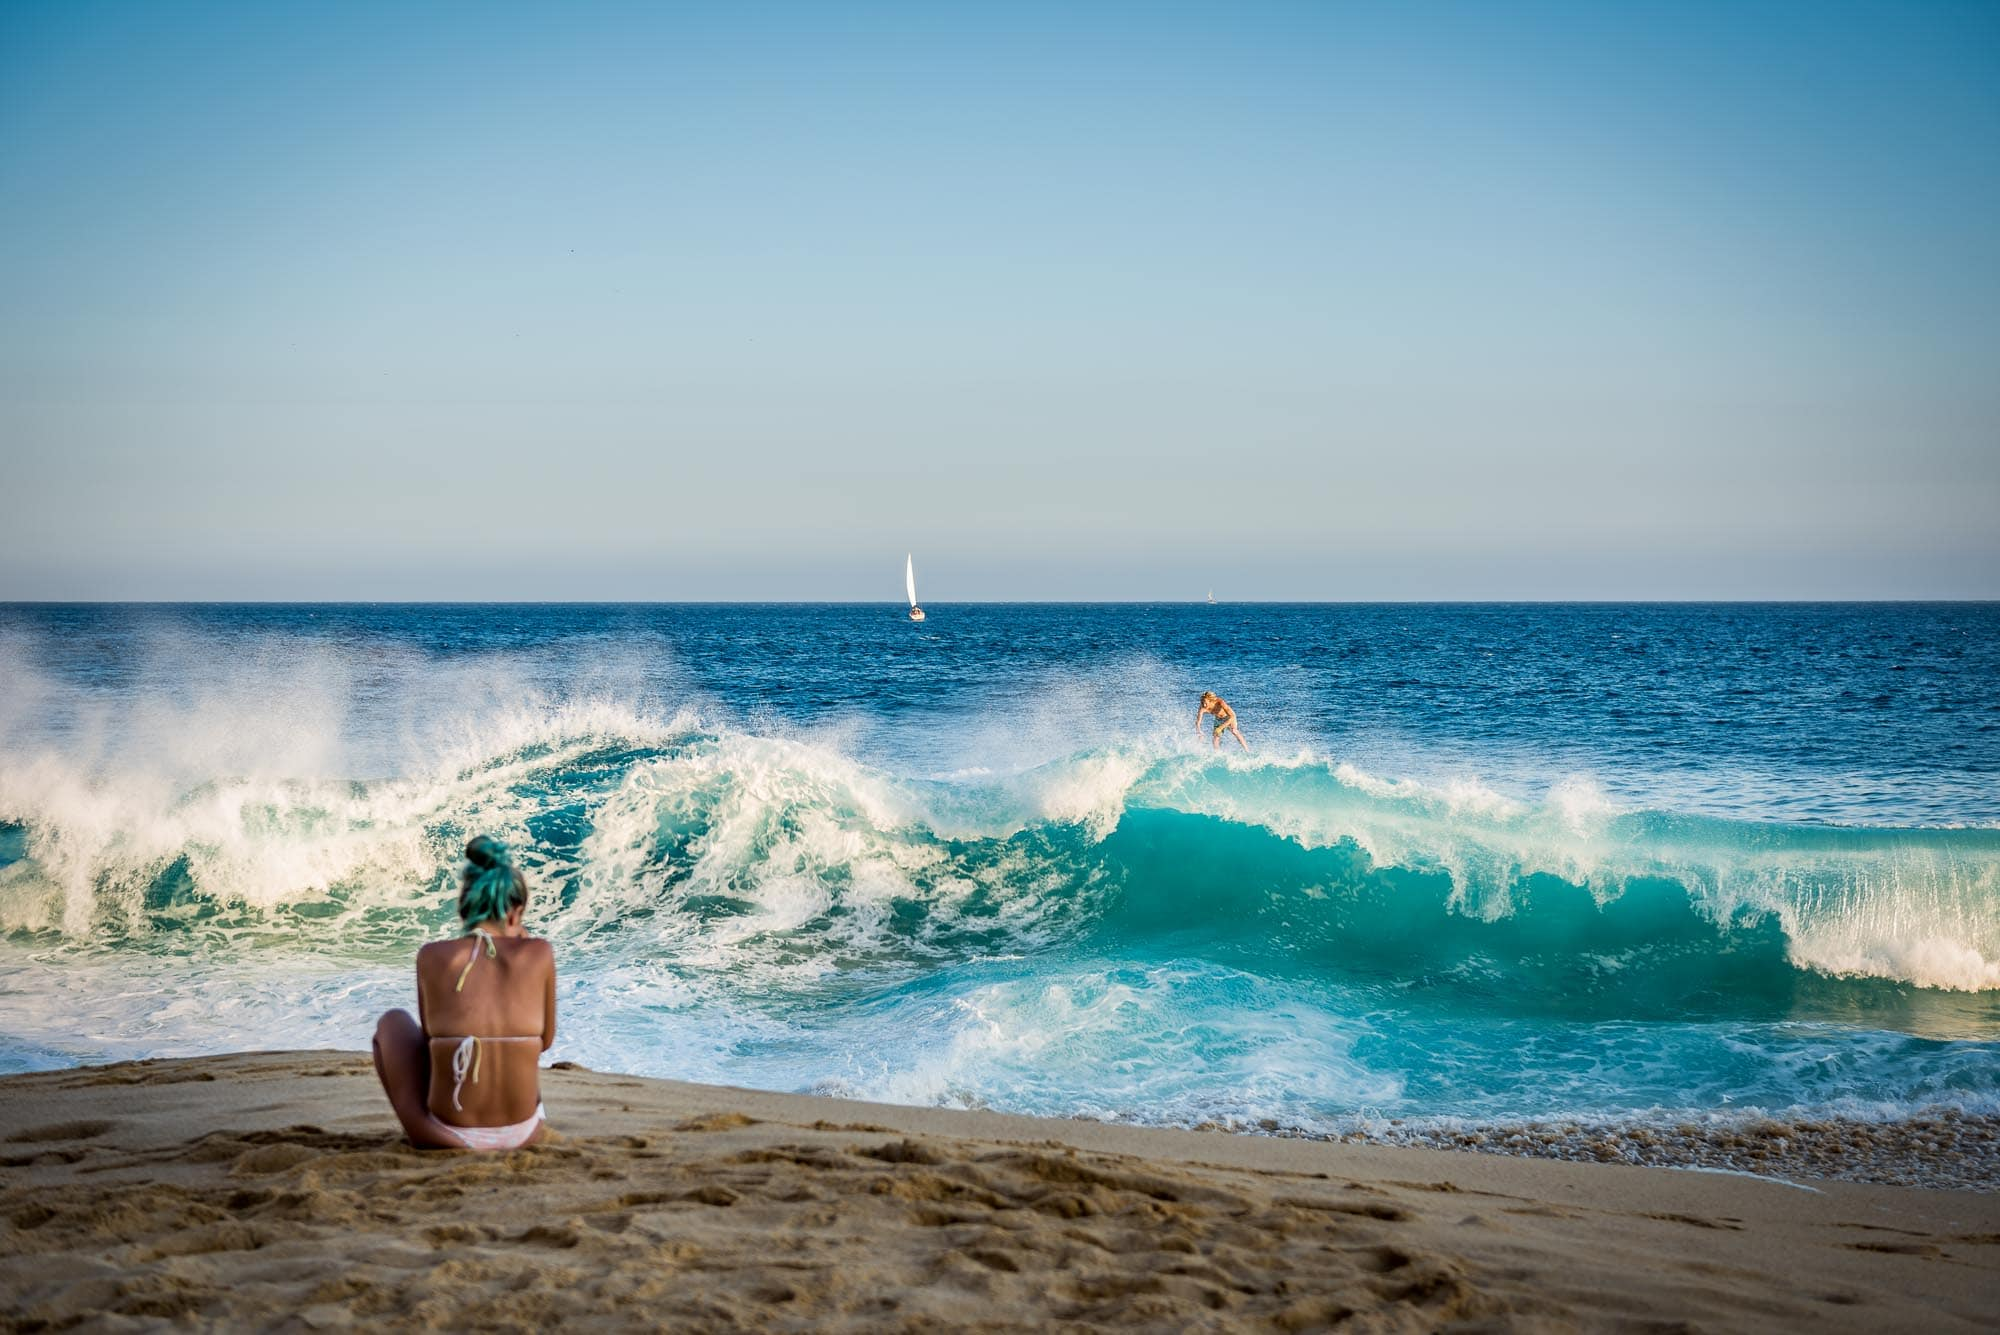 Savage of JoogSquad getting his picture taken by a girl with blue hair while he rides a wave on his skimboard at Land's End in Cabo San Lucas